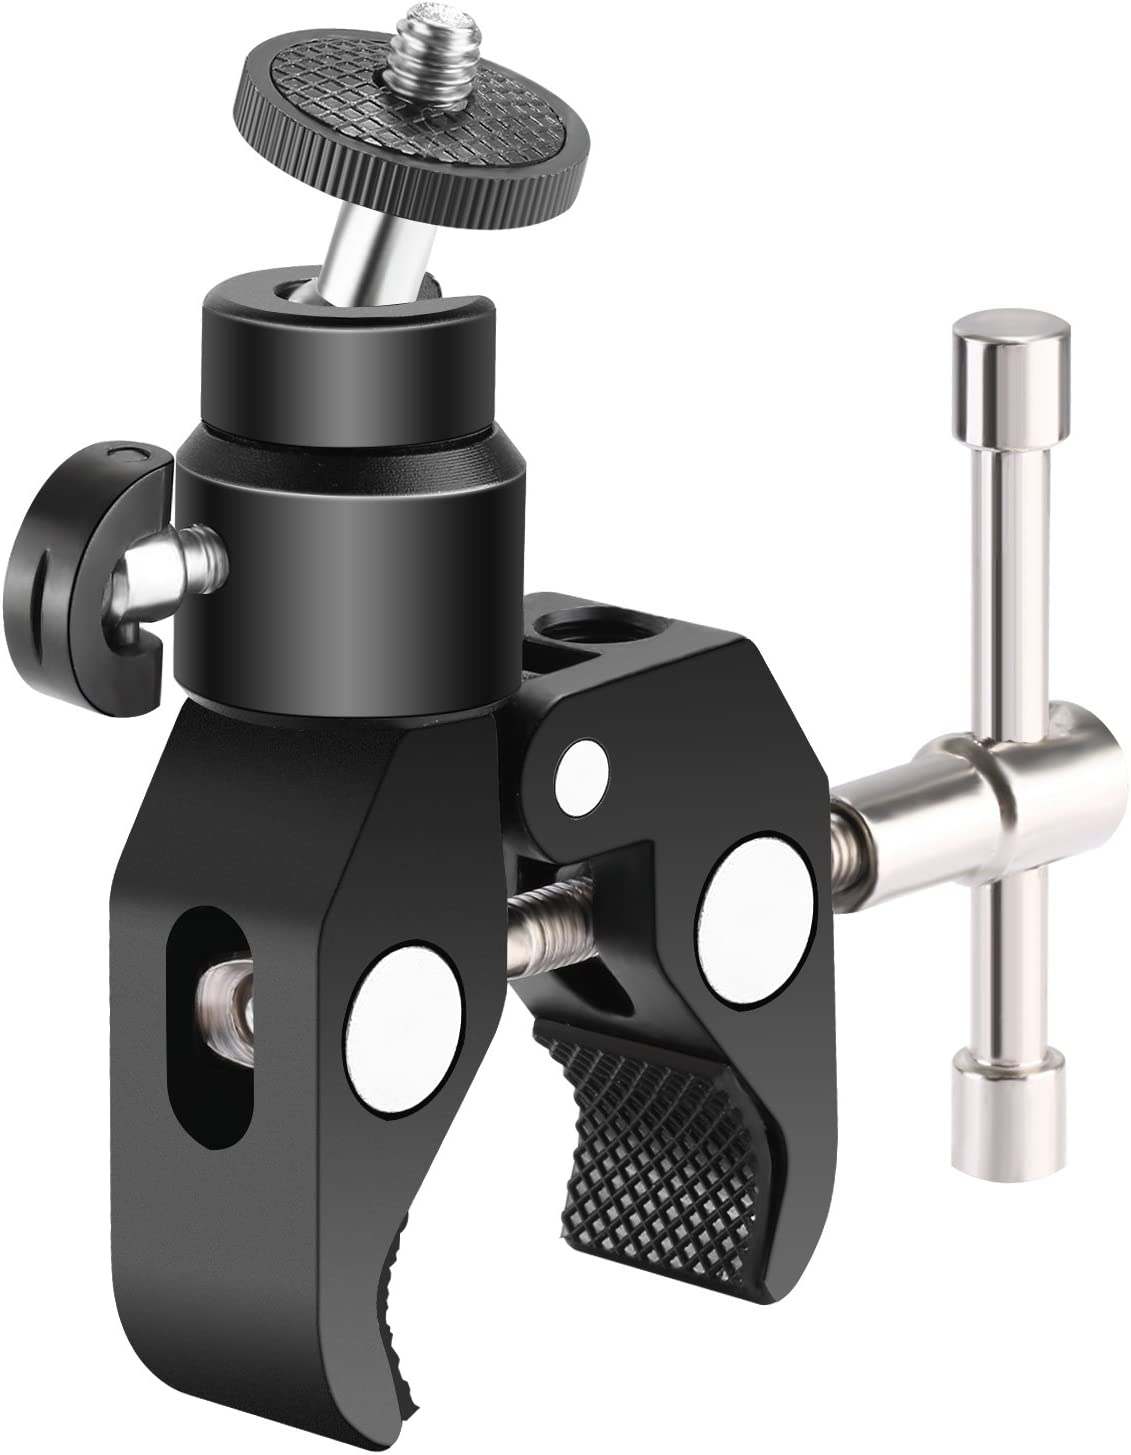 Grey High Point Camera Holder Clamp On